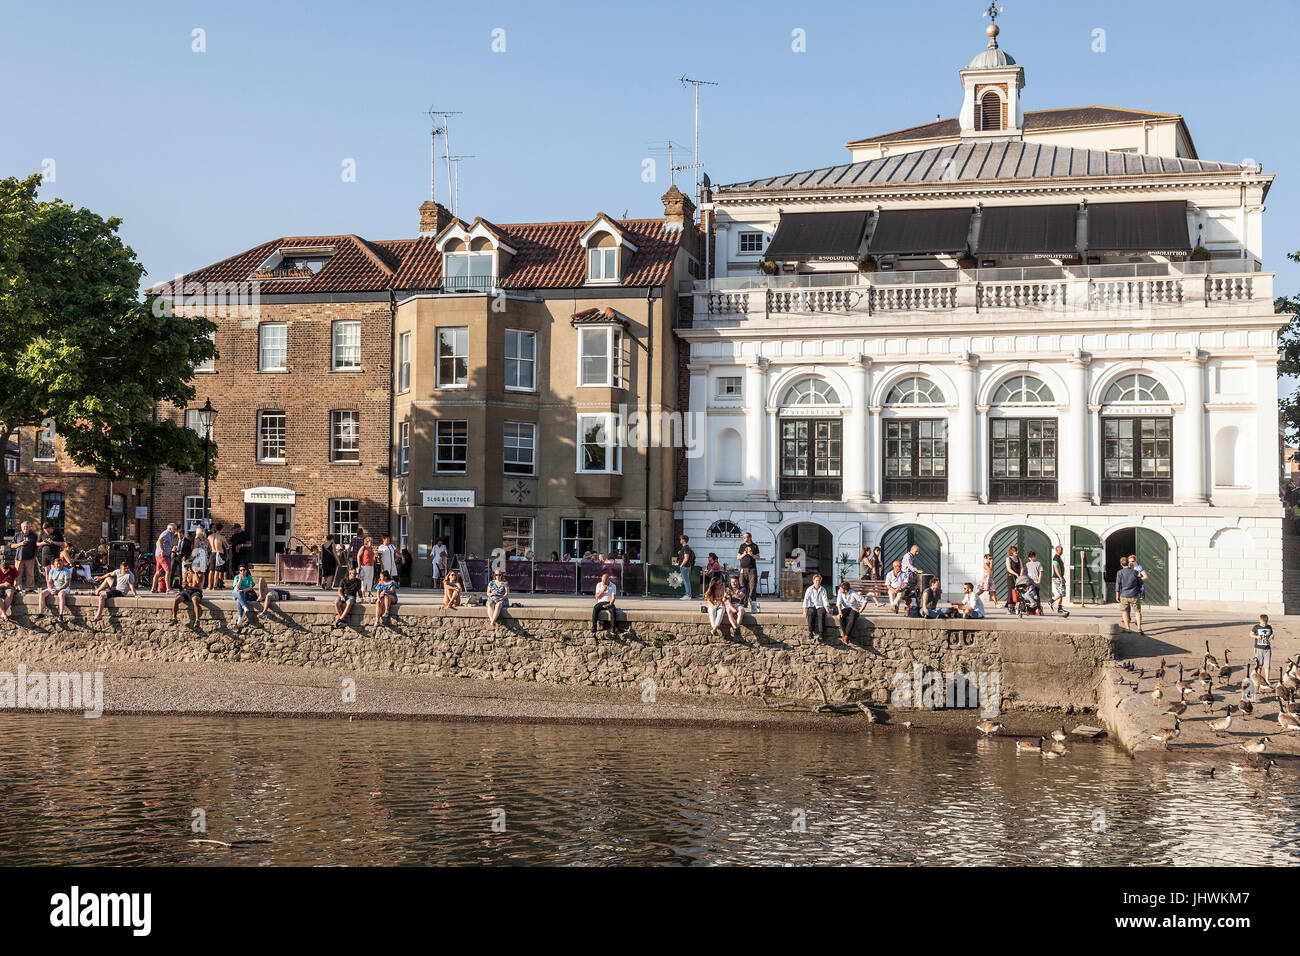 A hot summer evening on the riverfront in Richmond Upon thames. People are walkling, sitting and eating. The Slug - Stock Image